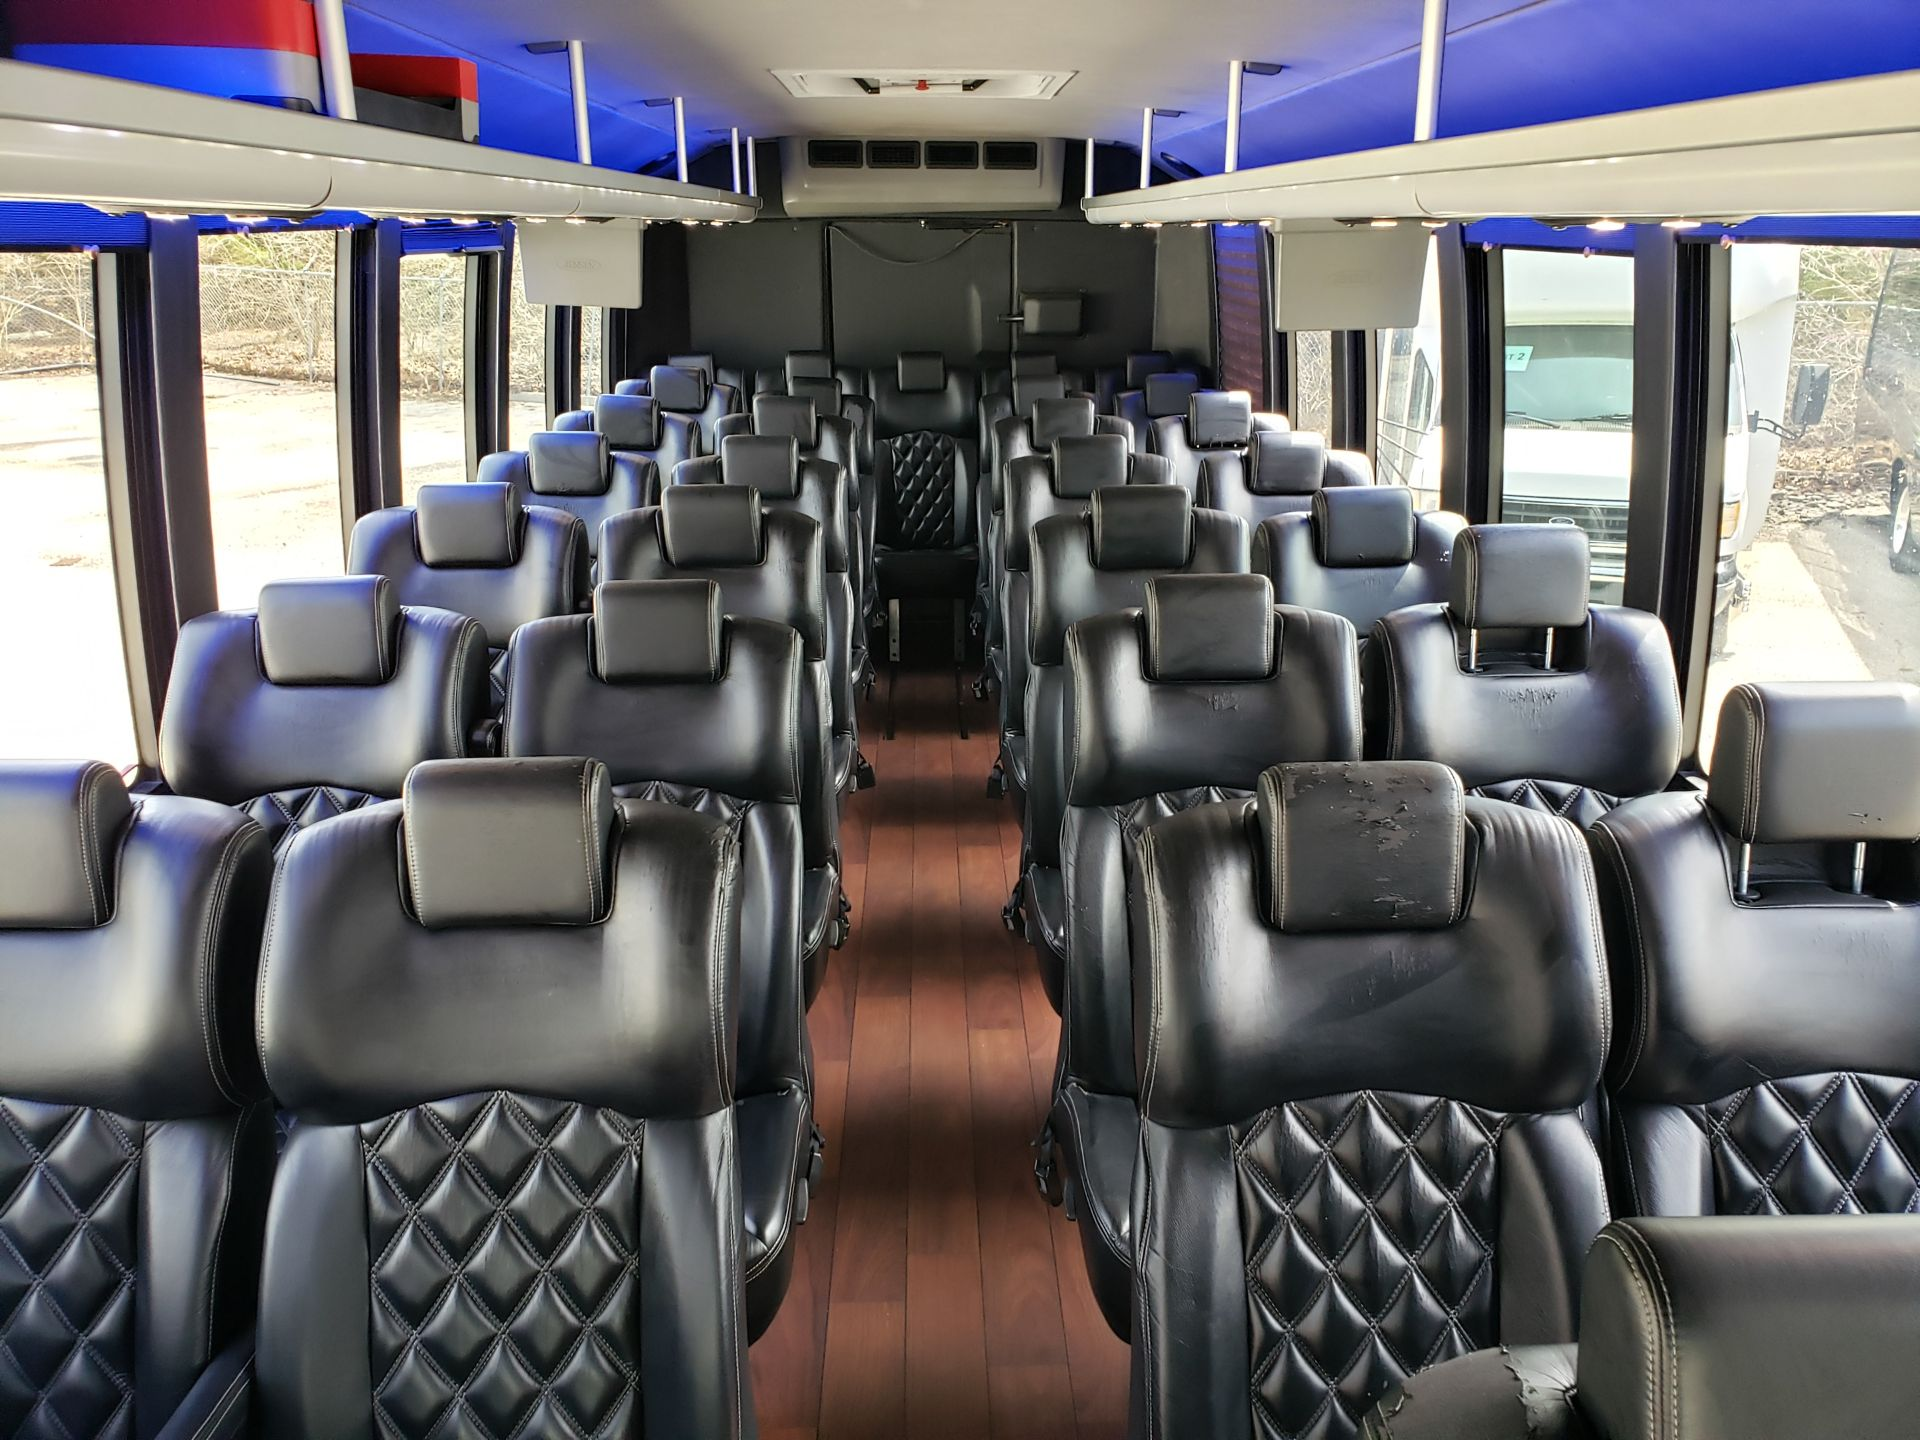 2013 Ford F550SD XL Grech Motors 33-Pass Shuttle Bus - Image 8 of 18